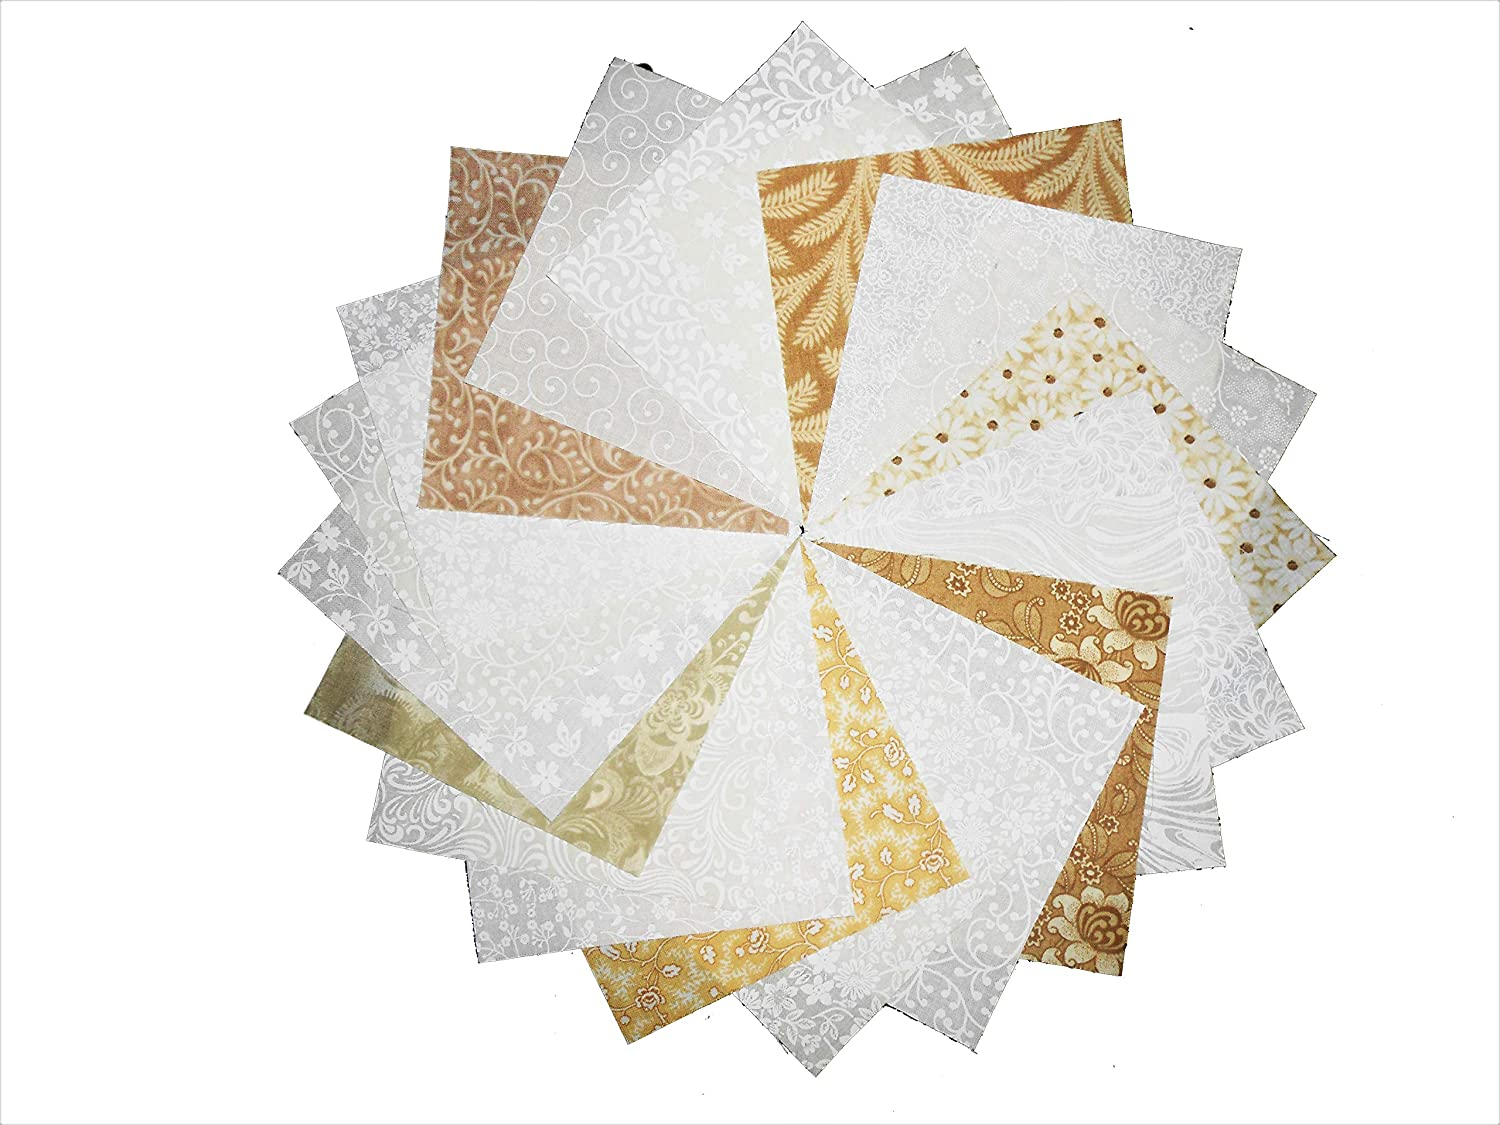 80 5 Inch Quilting Fabric Squares Cream and Sugar/Neutrals Charm Pack